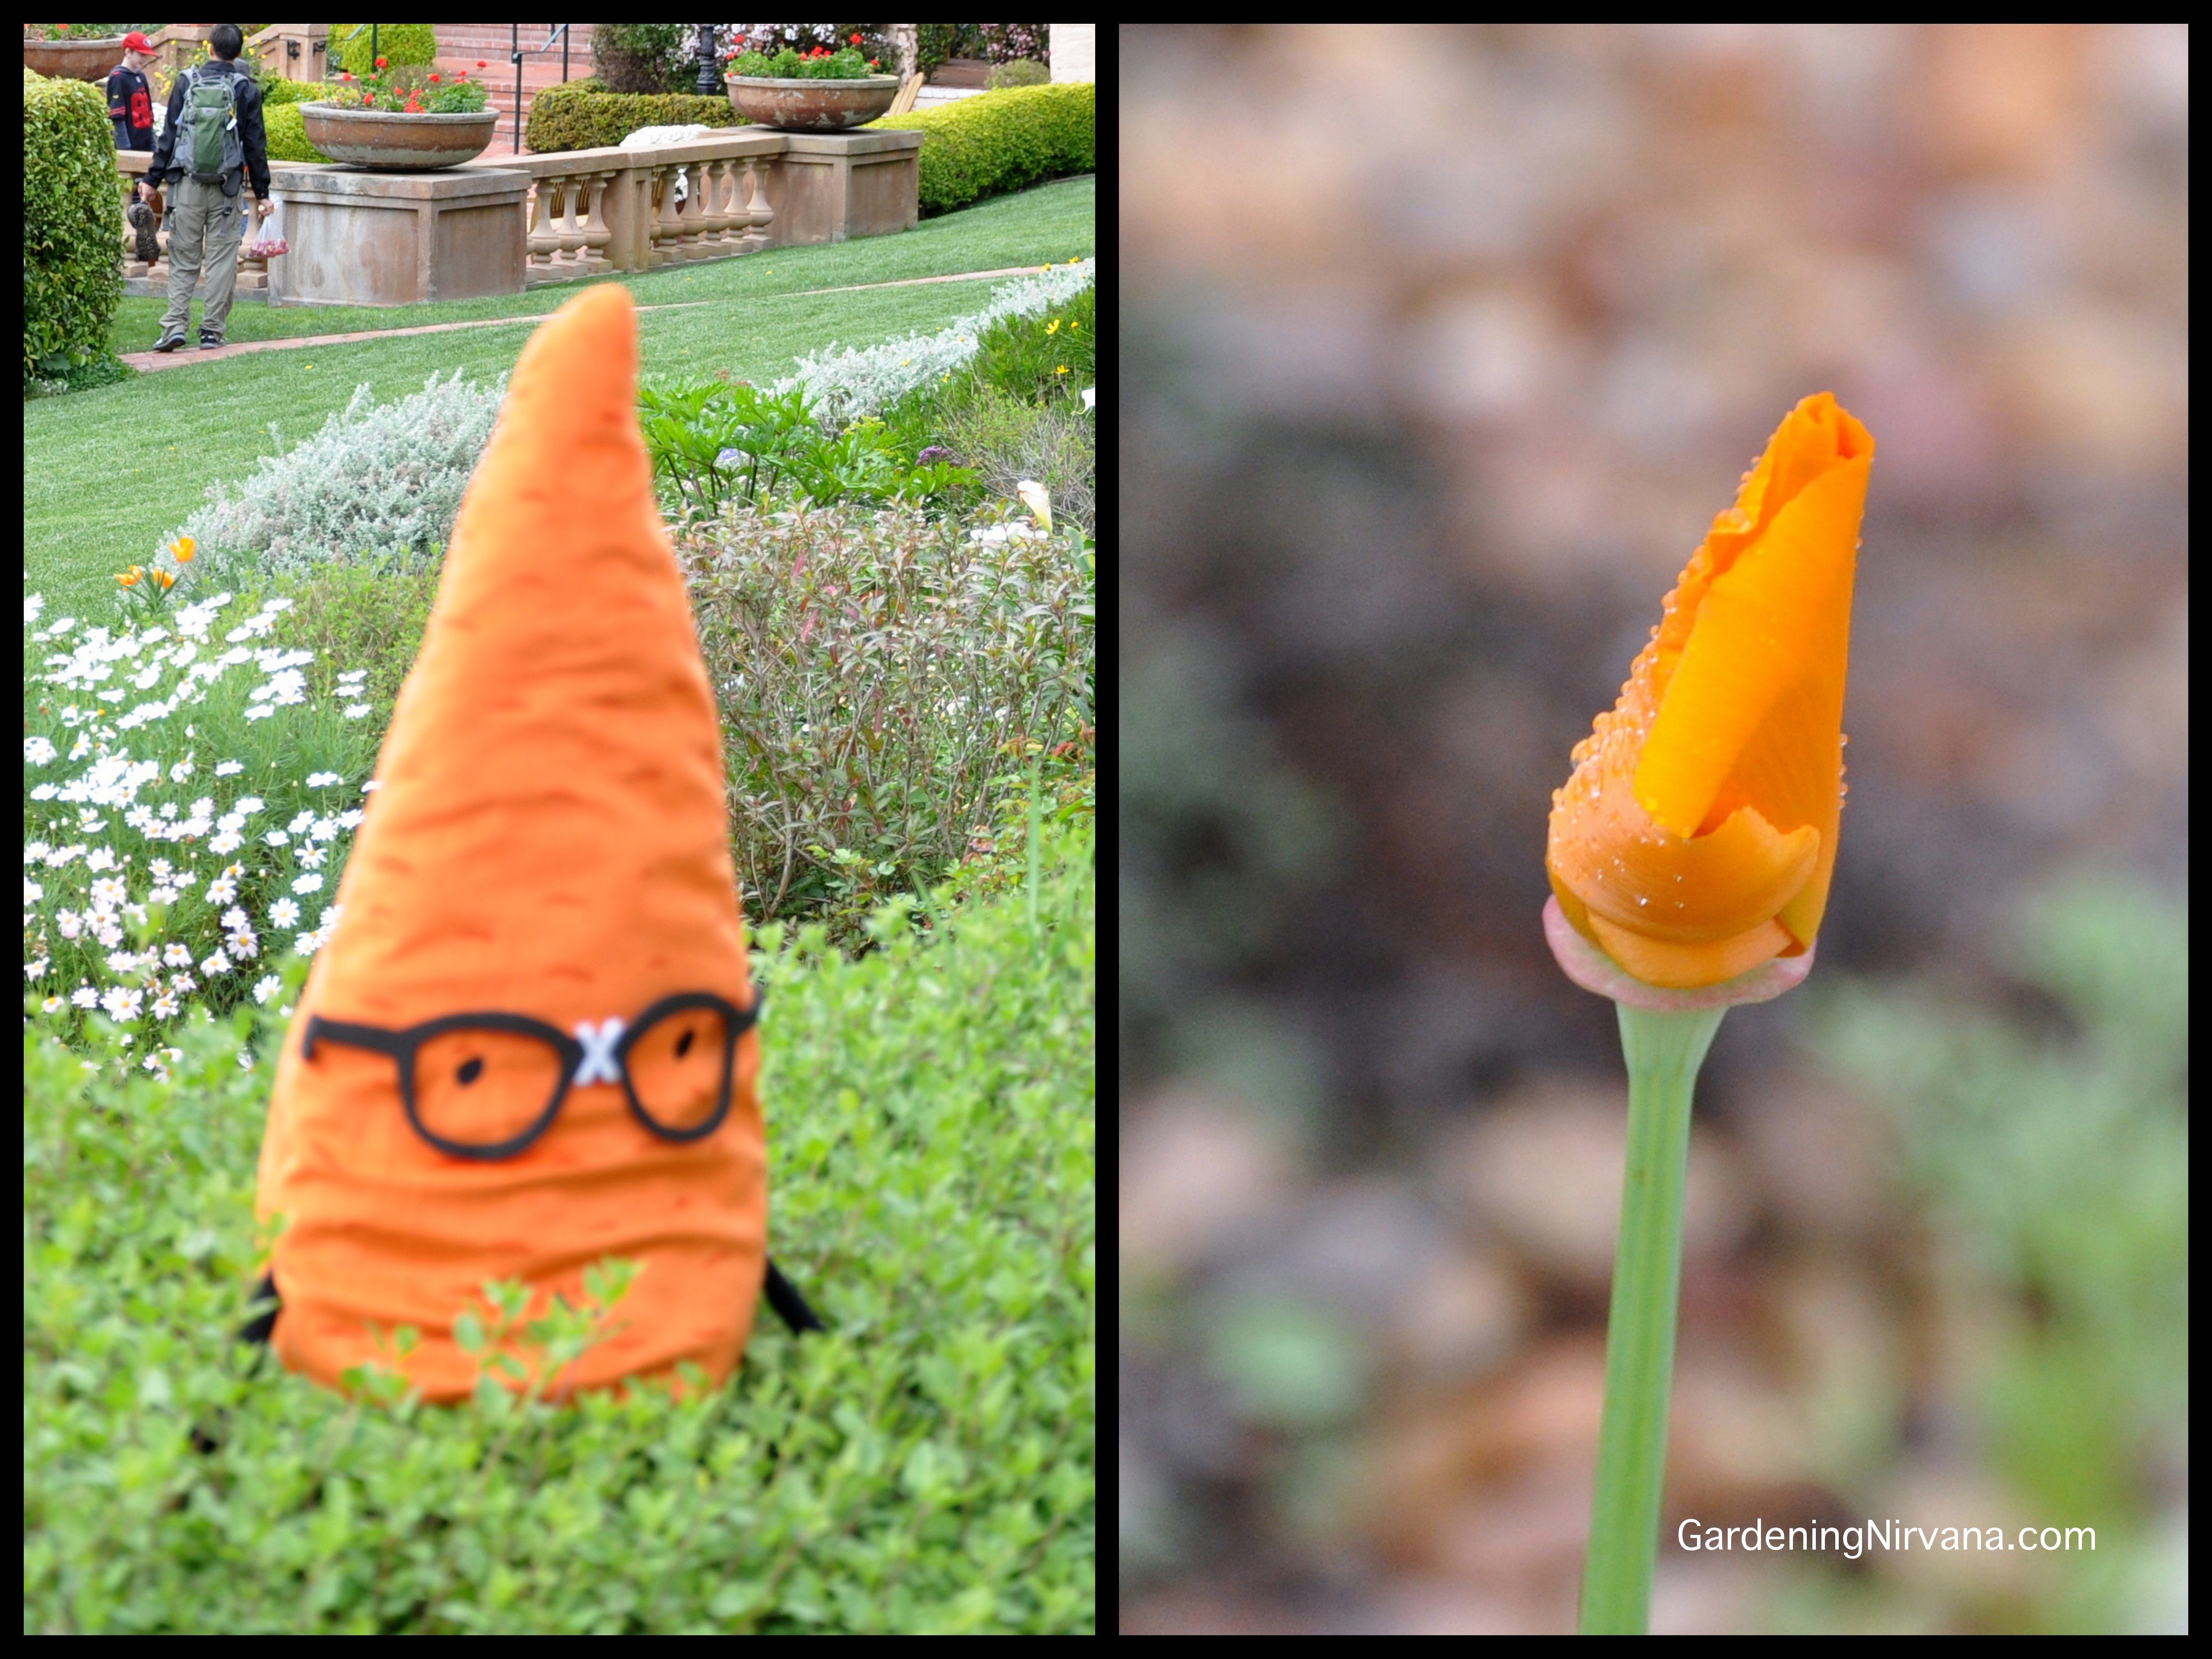 All photos by Alys Milner of Gardening Nirvana. We love that Mr. Nerd could go as a California poppy at a Halloween party. Thanks for pointing that out Alys!